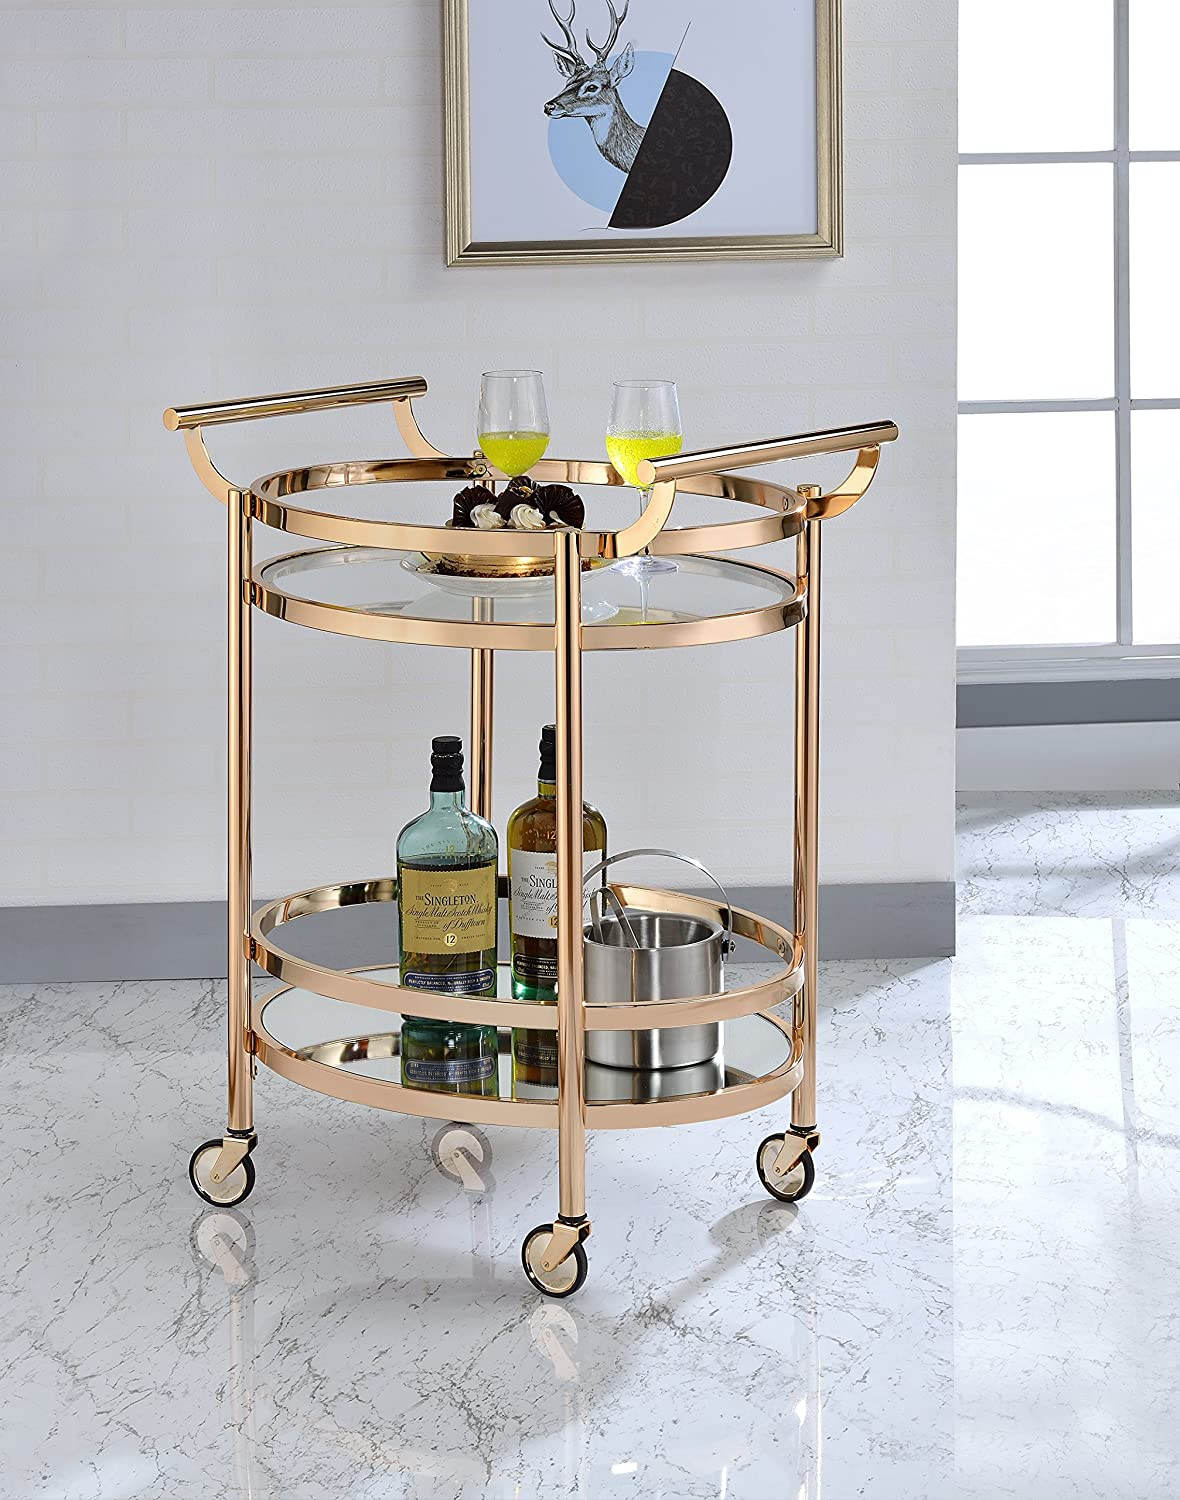 Oval metal bar cart with clear glass shelves